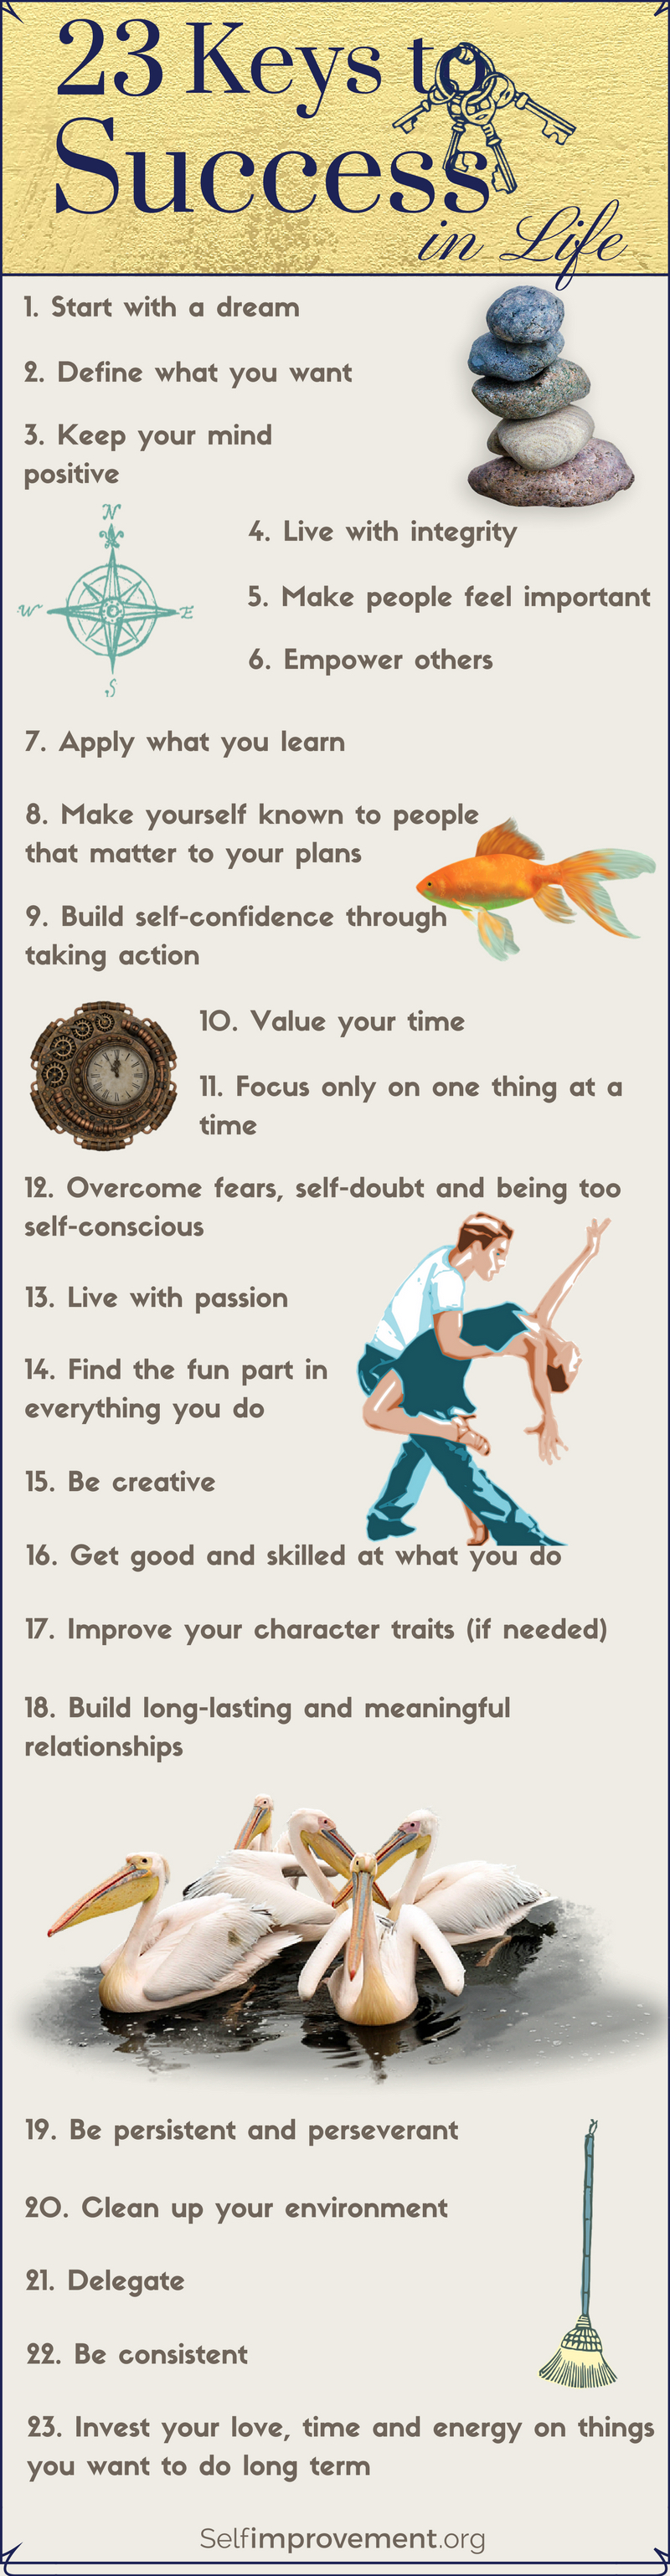 23 Keys to Success in Life by Carmen Jacob, selfimprovement.org | From the blog of Nicholas C. Rossis, author of science fiction, the Pearseus epic fantasy series and children's books